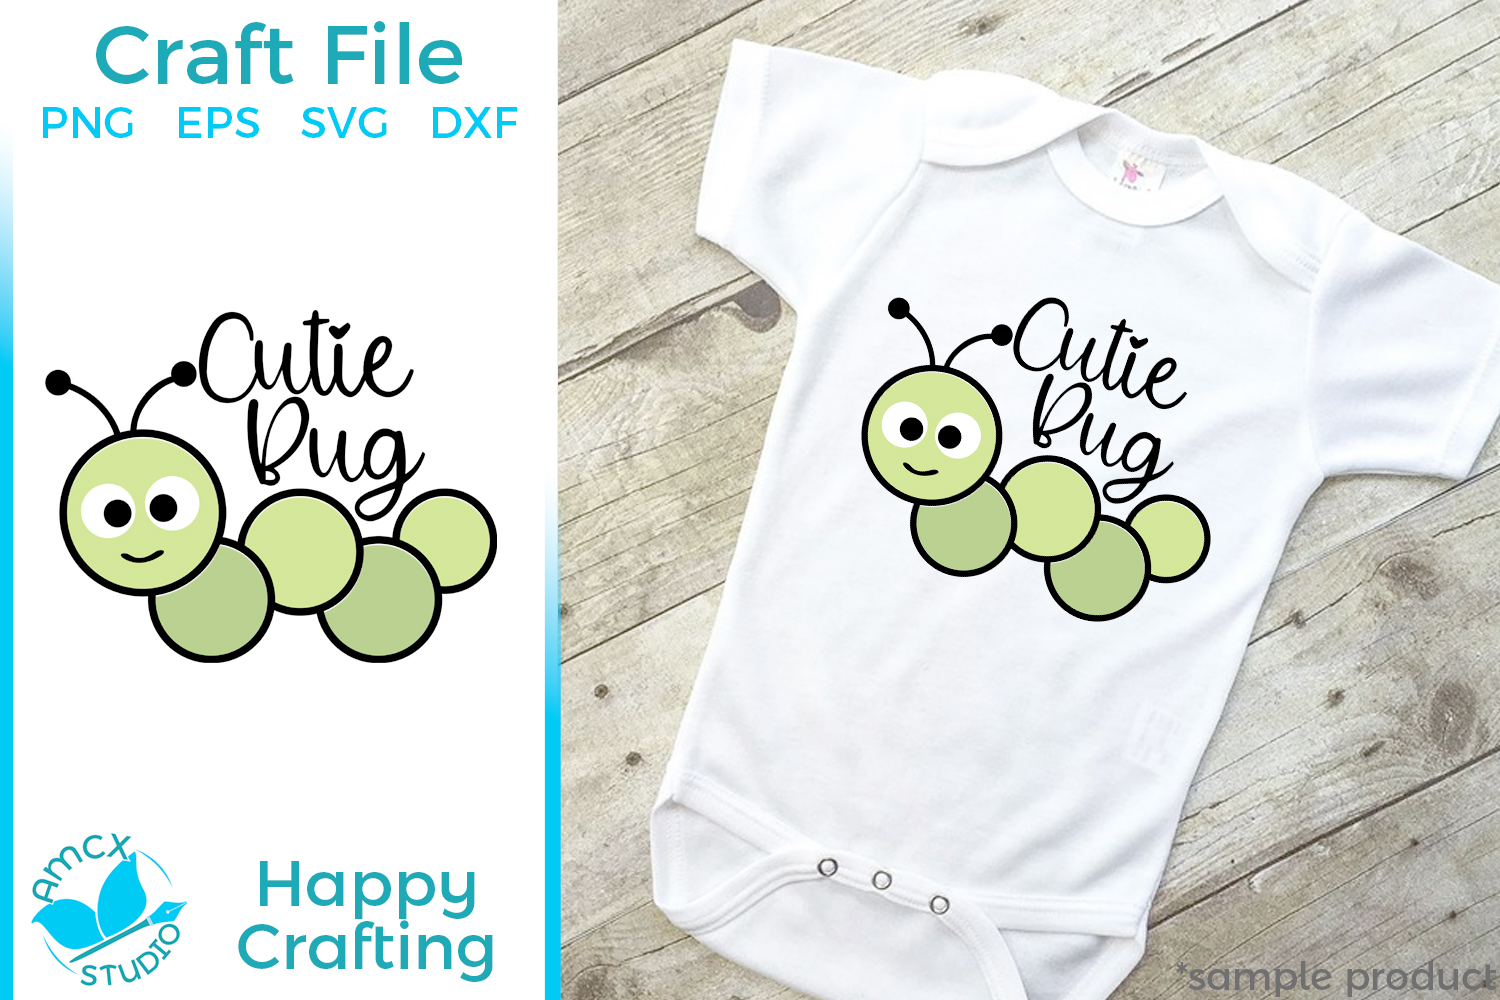 Cutie Bug - A Cute Insect Craft File example image 1